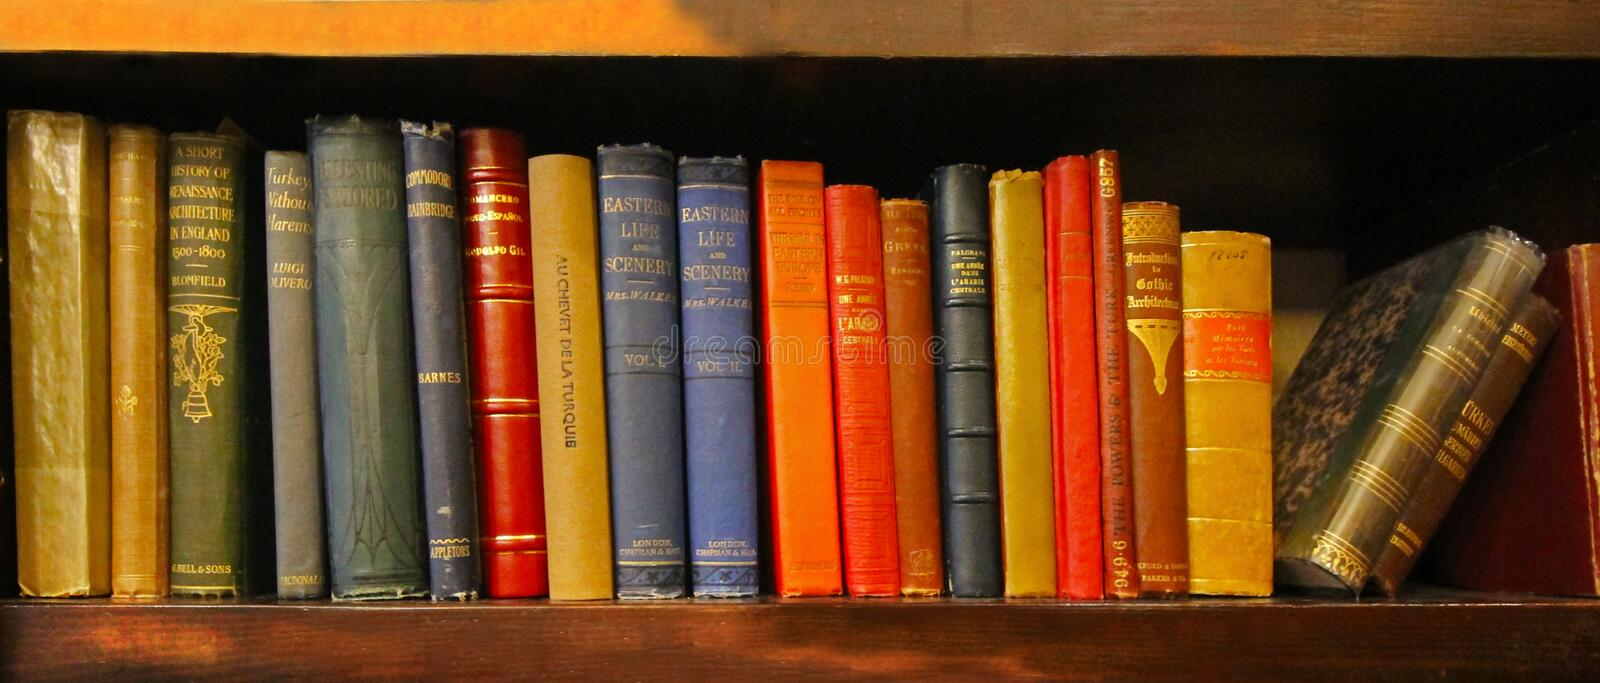 Istanbul, Istiklal Street / Turkey 05.03.2019: Antique Book Collections, Bookshelf View. royalty free stock photography